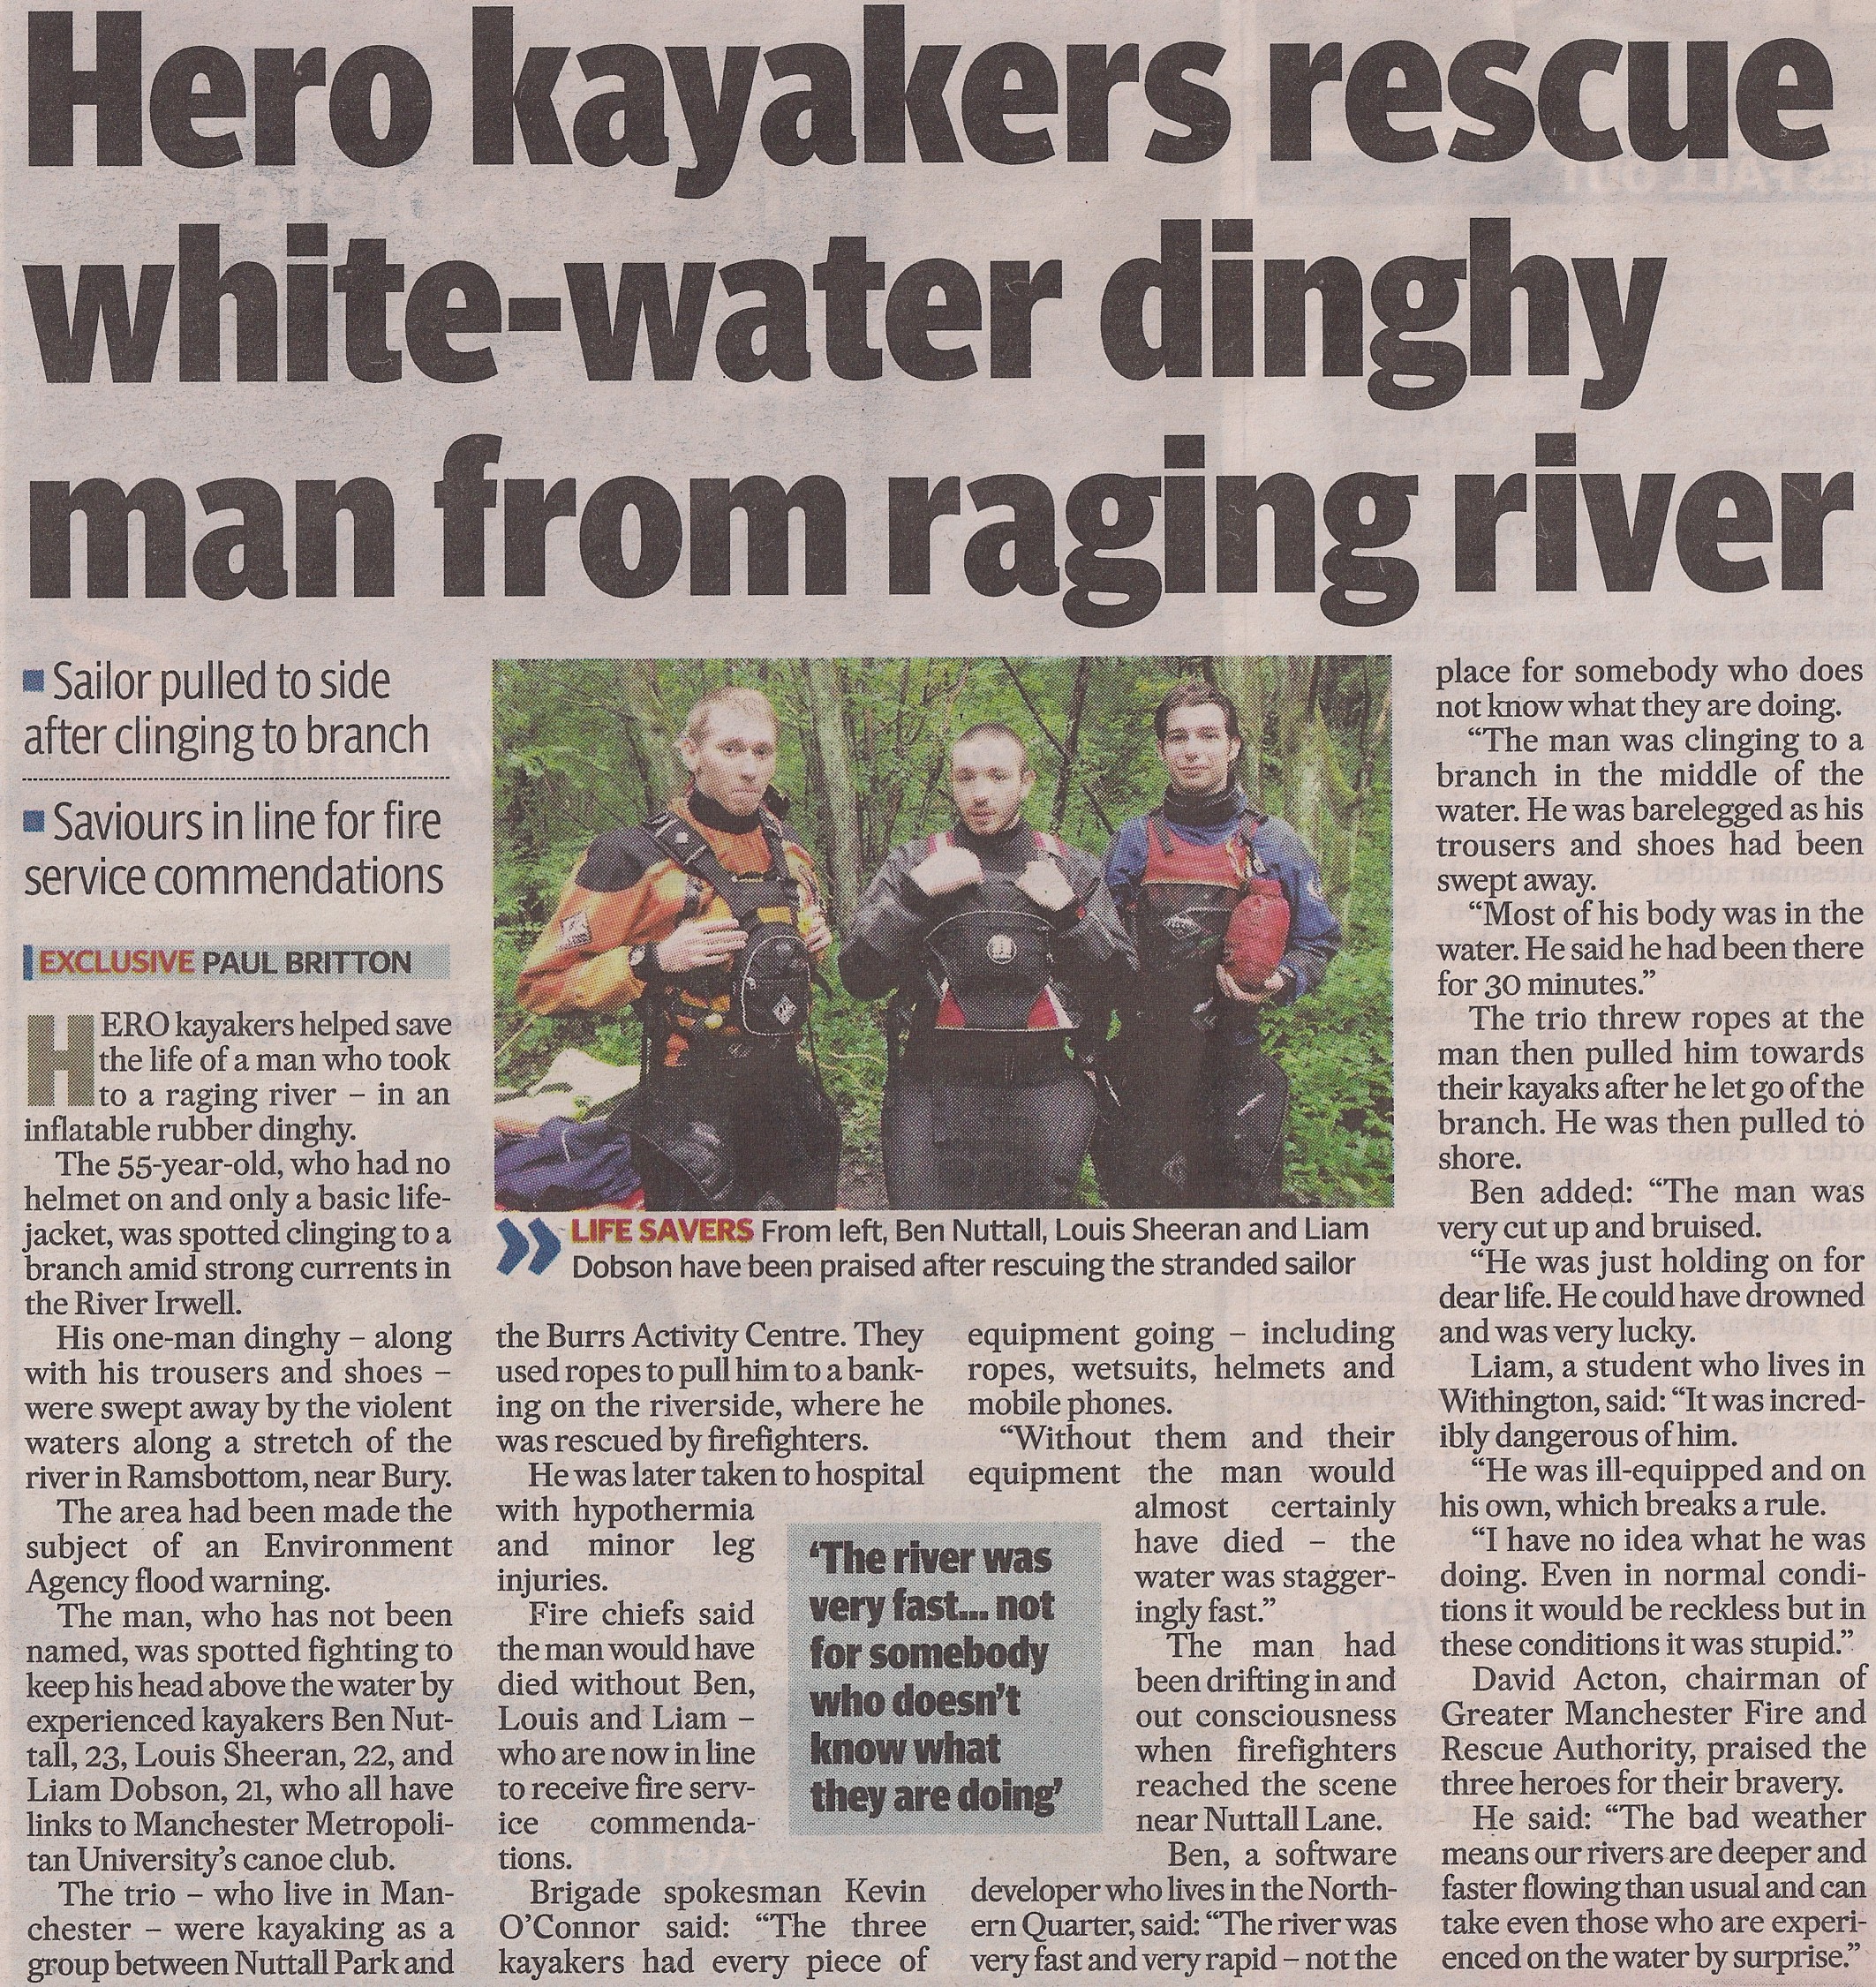 Hero Kayakers Rescue Whitewater Dinghy Man